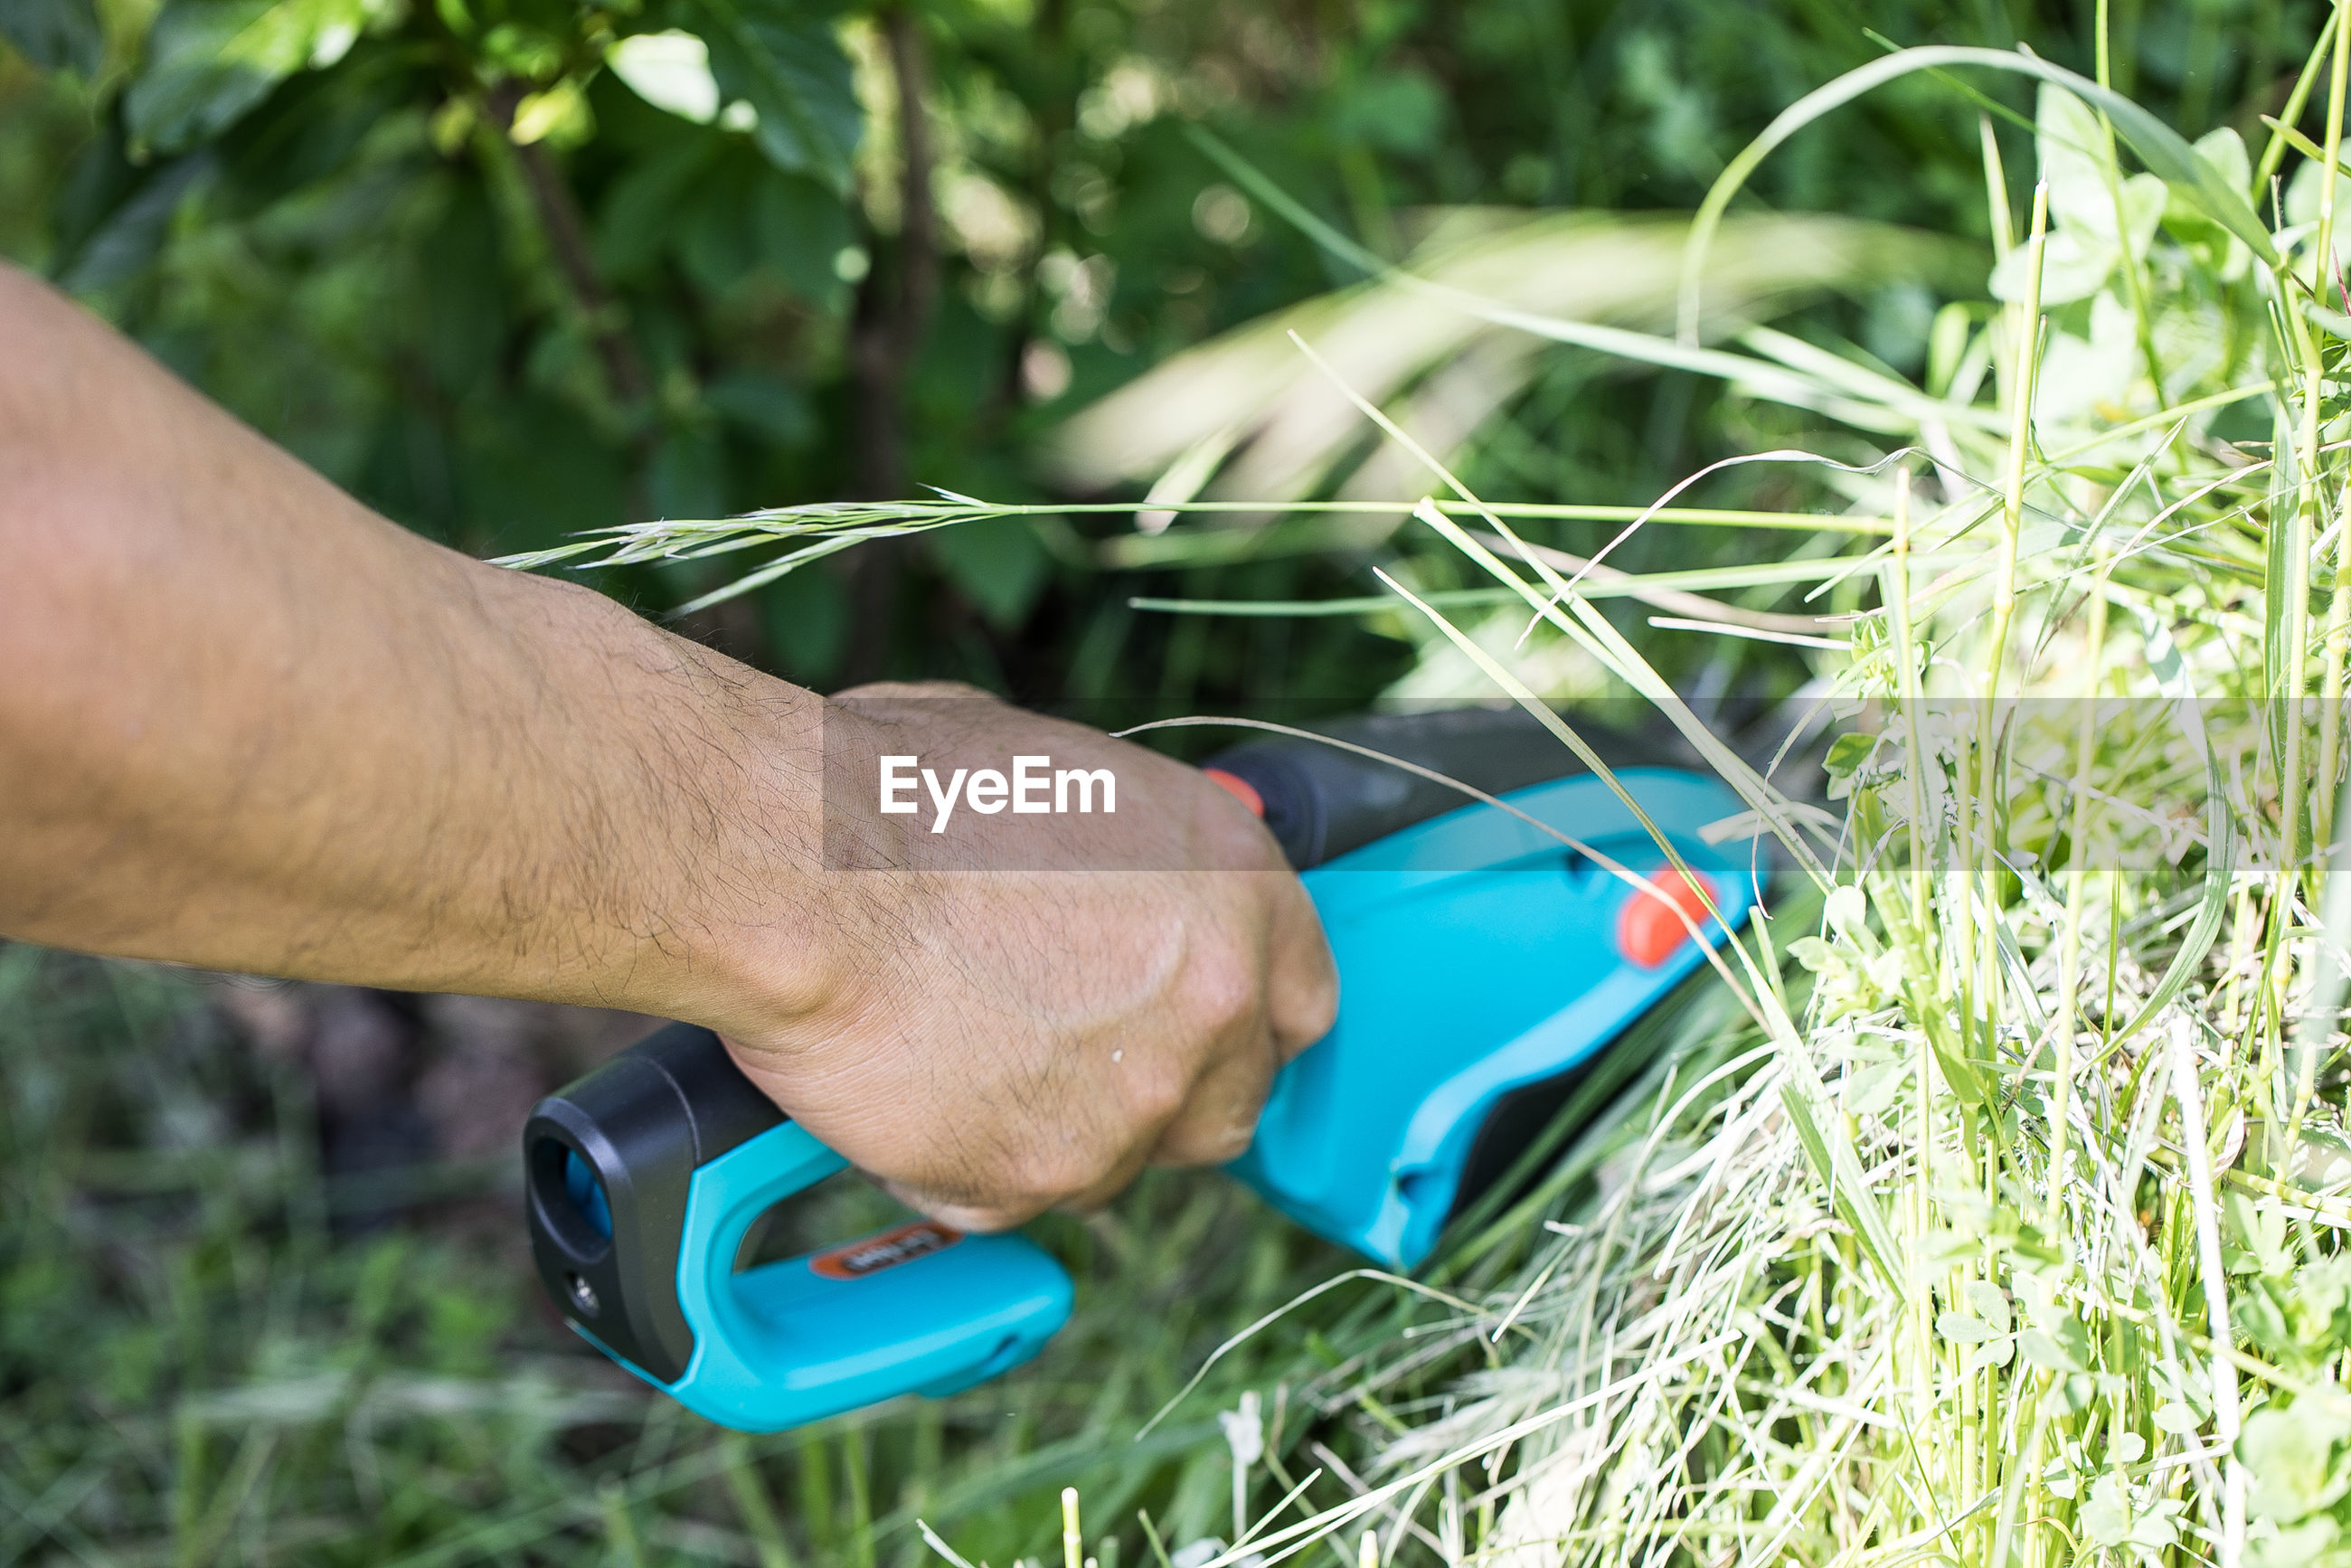 Cutting grass with electric hand device i the garden